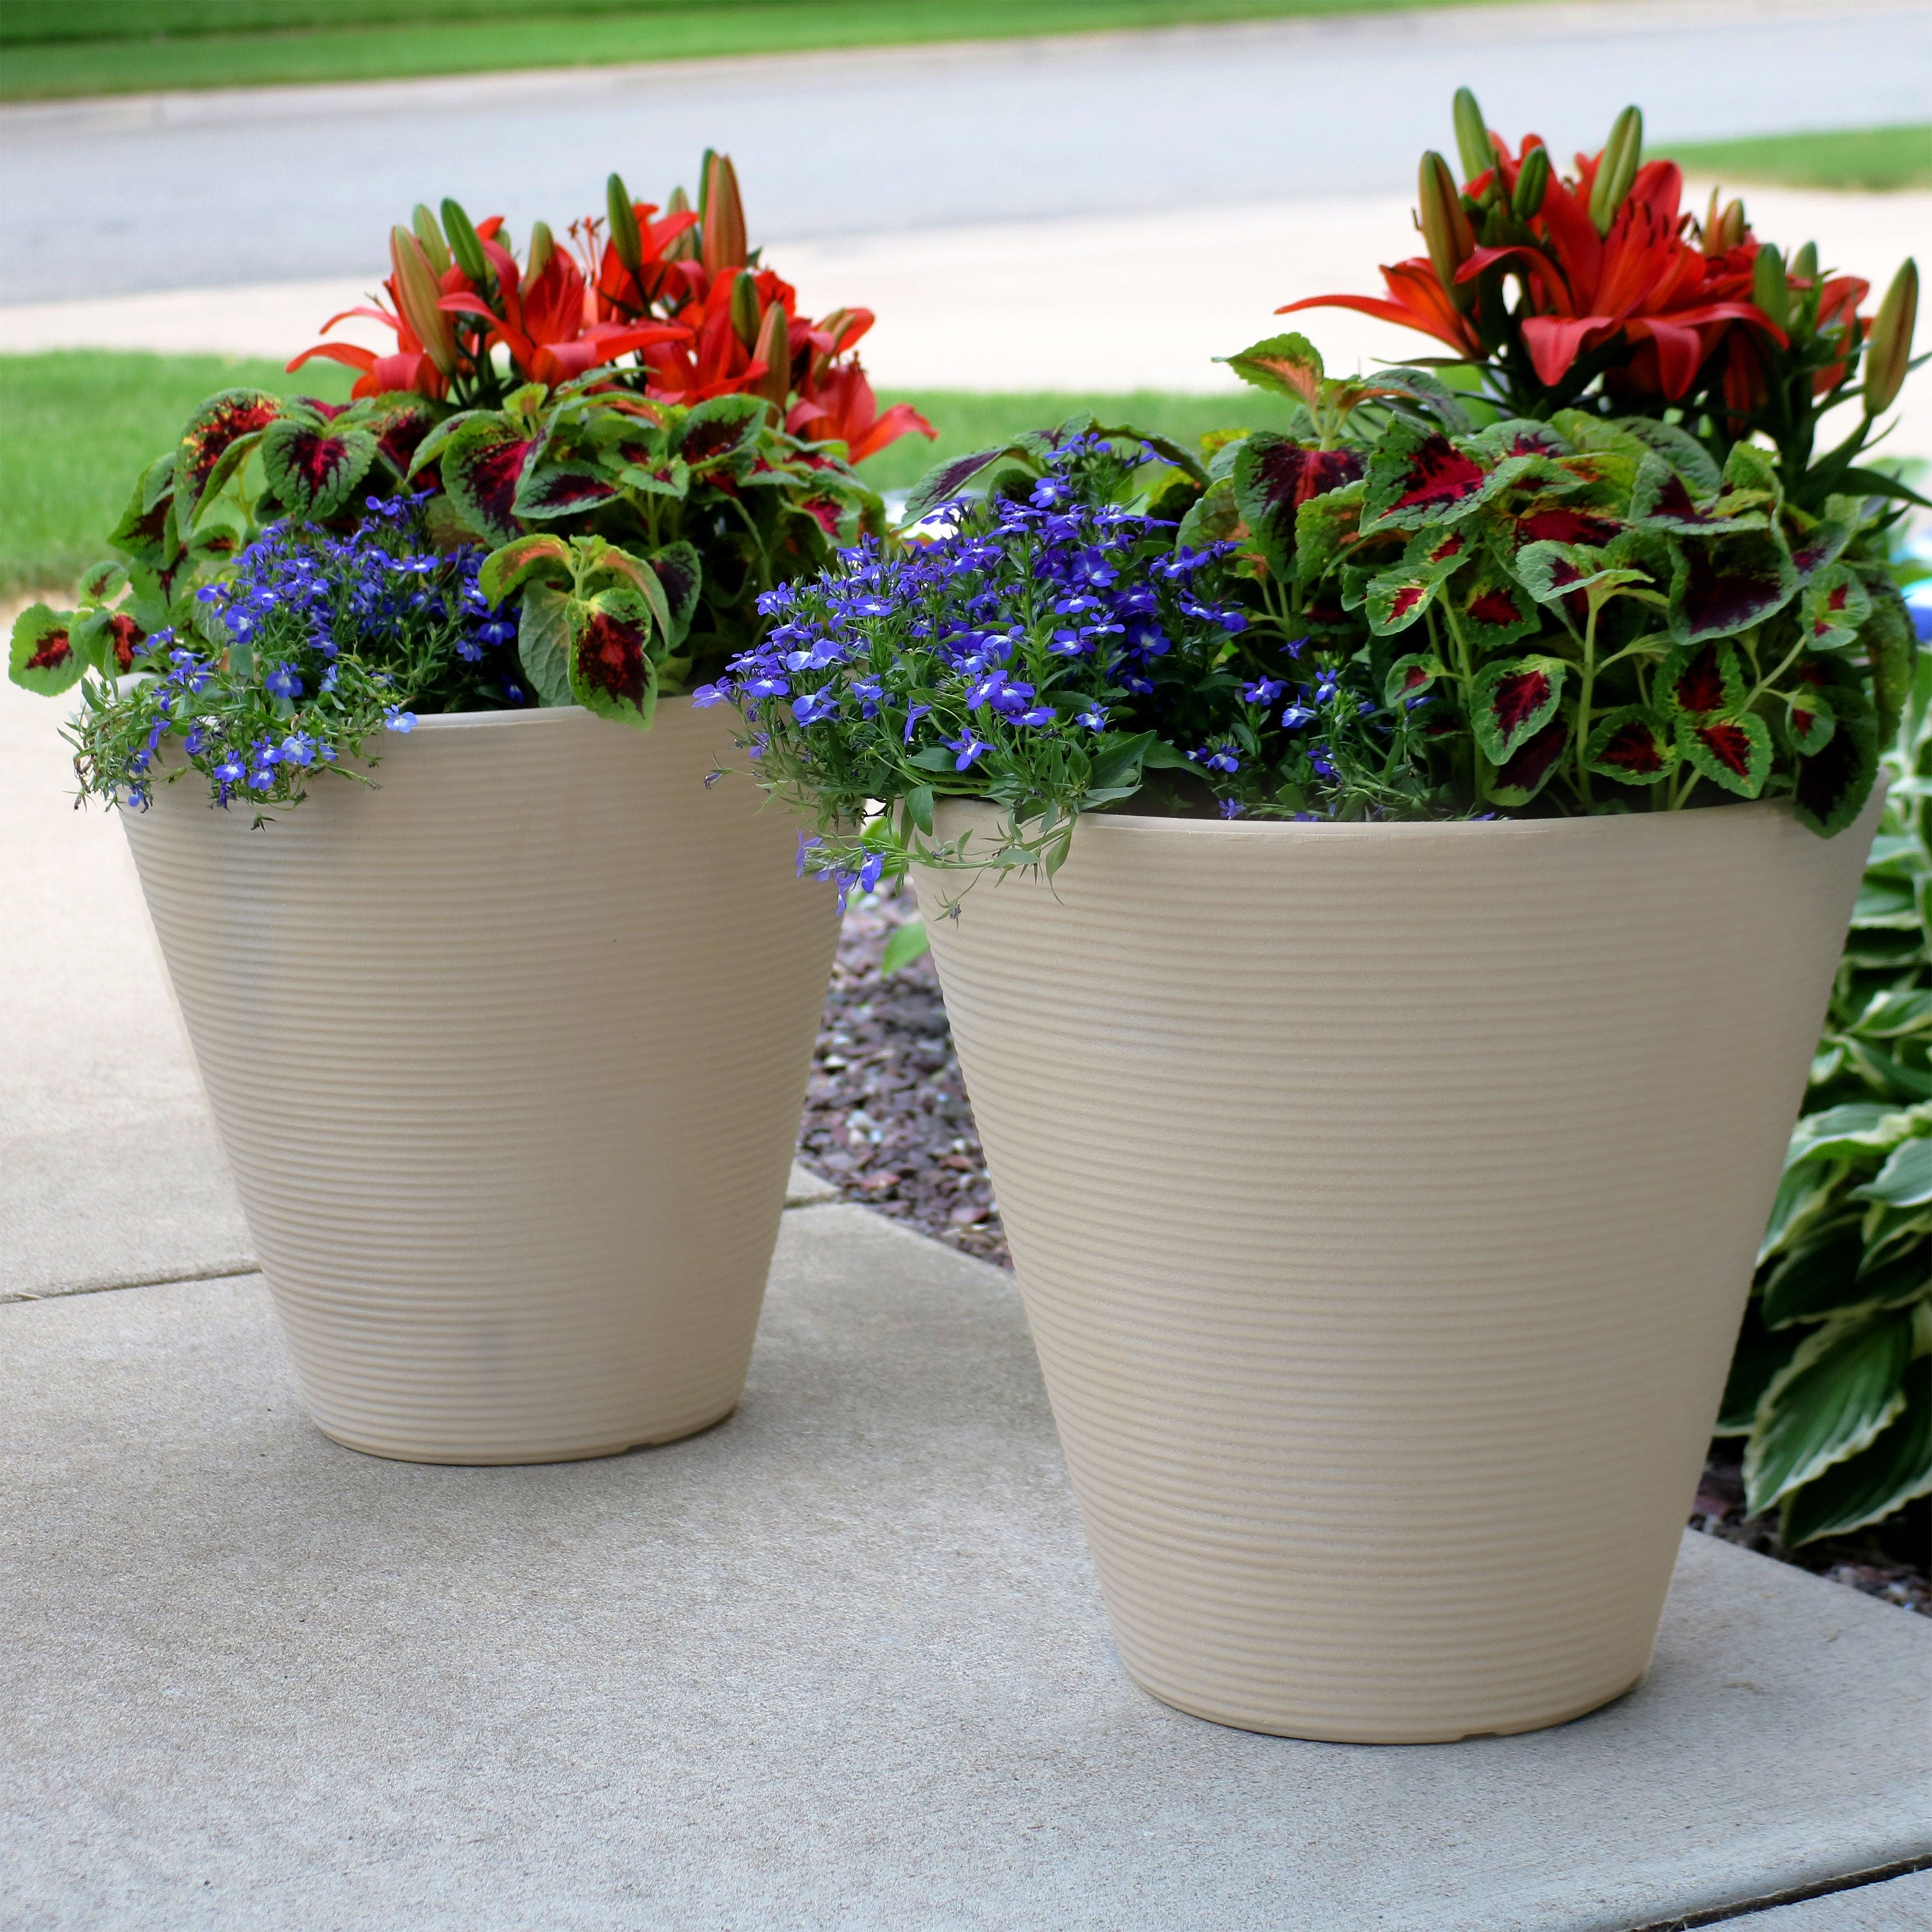 Sunnydaze Walter Outdoor Flower Pot Planter Beige Finish 16 Inch 2 Pack